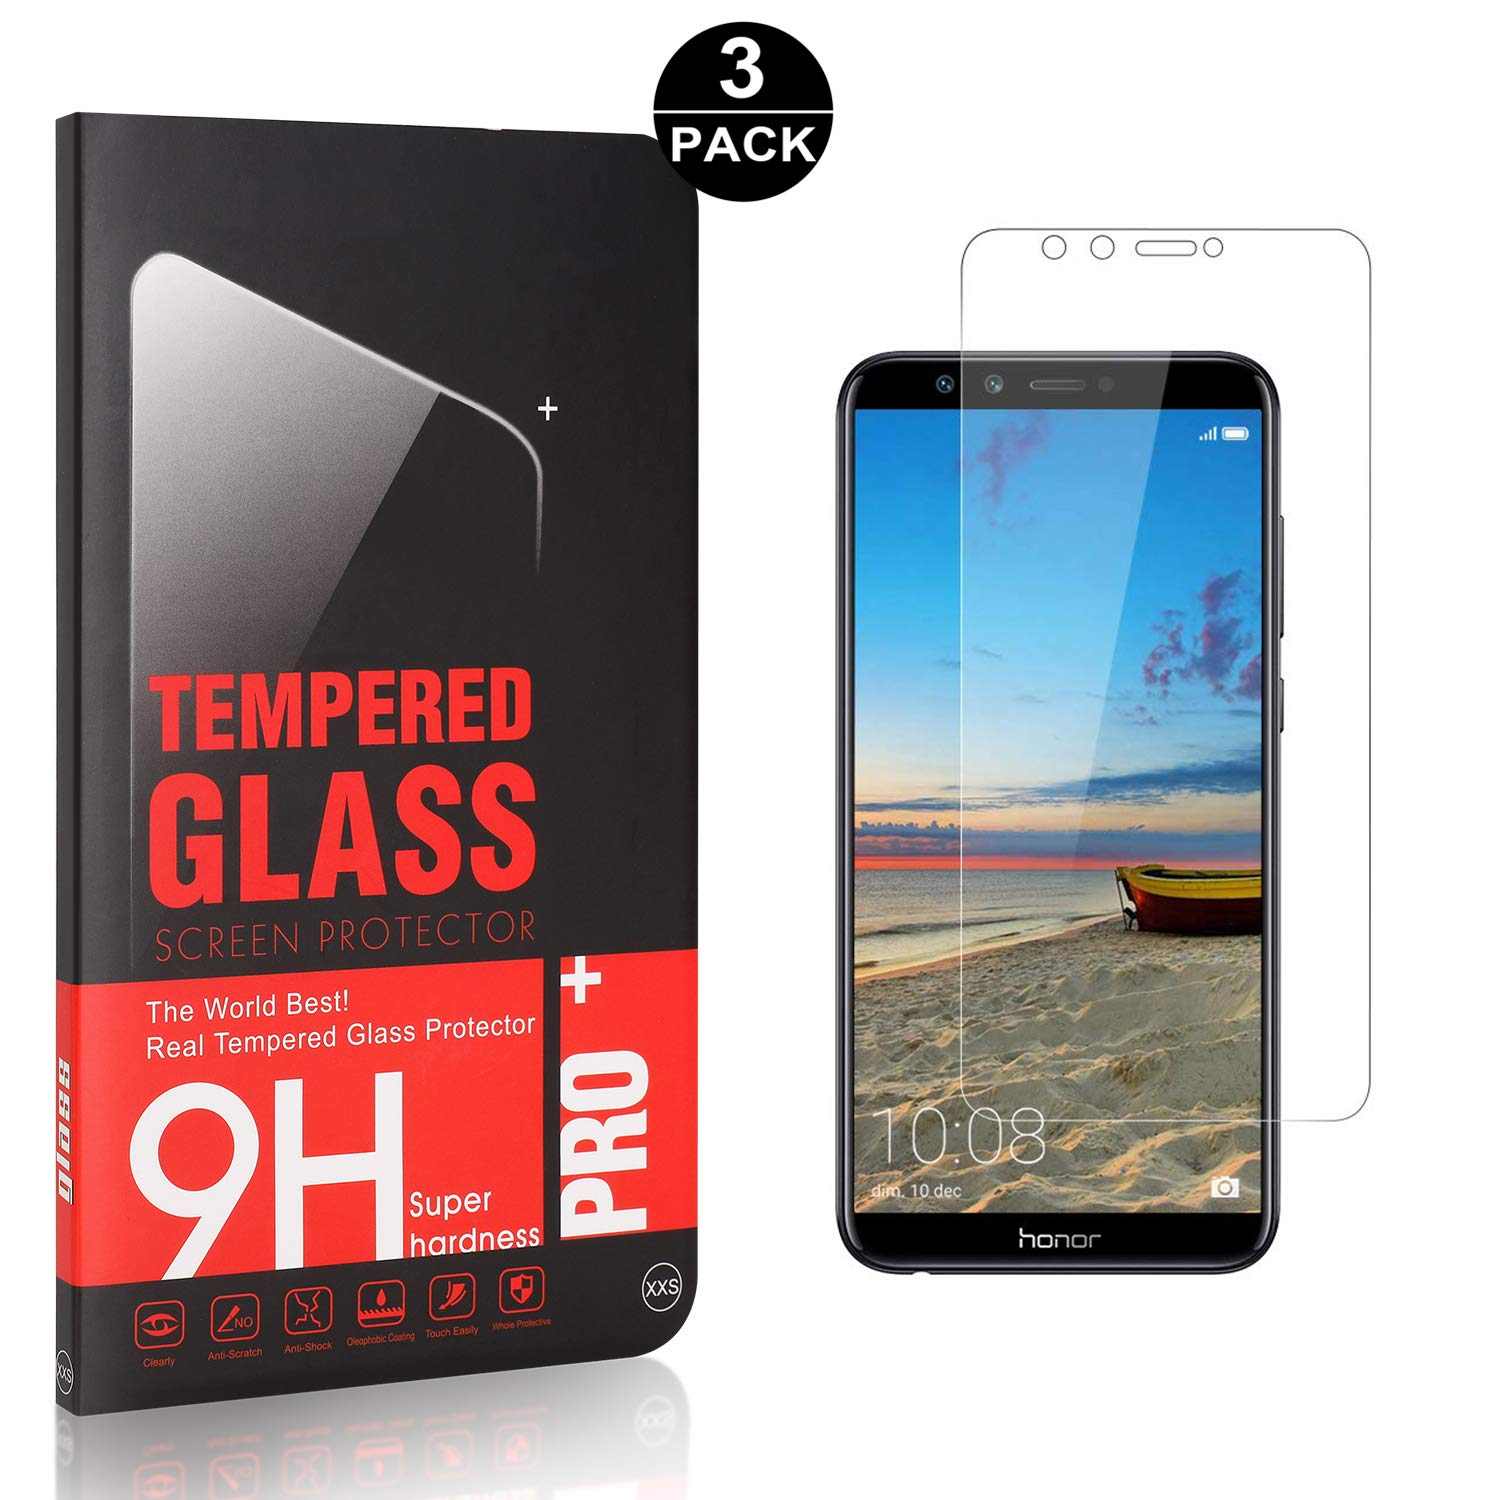 Bear Village Huawei Honor 9 Lite Premium Tempered Glass Screen Protector 3 Pack Ultra Clear Bubble Free Screen Protector Film for Huawei Honor 9 Lite